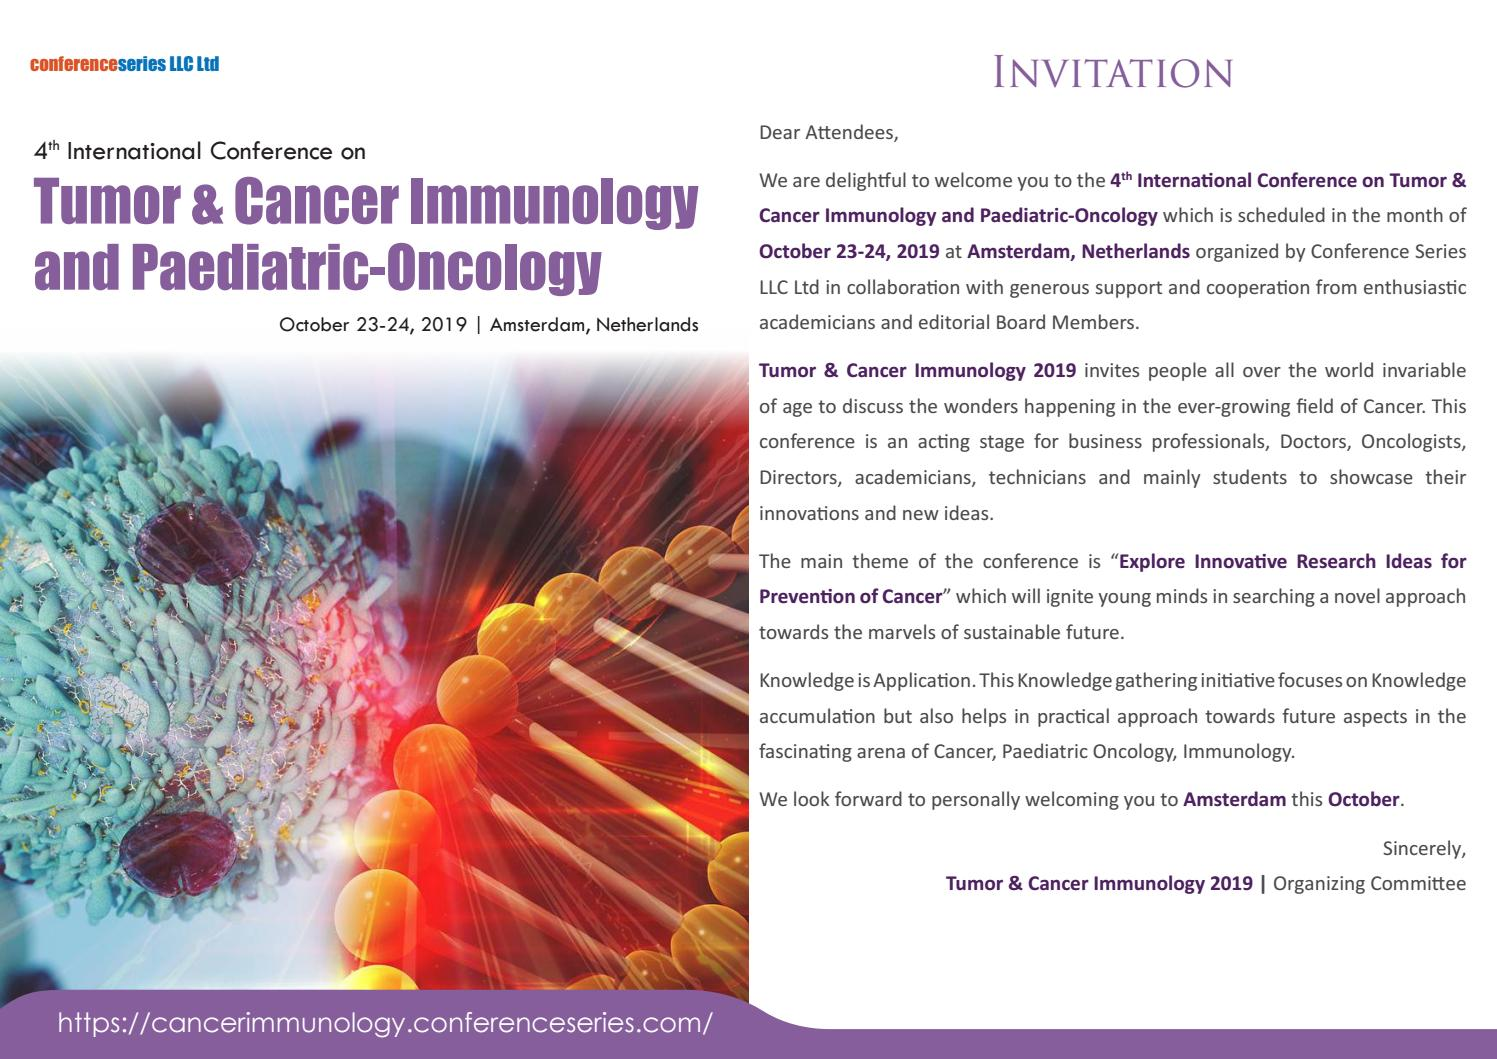 4th International Conference on Tumor & Cancer Immunology